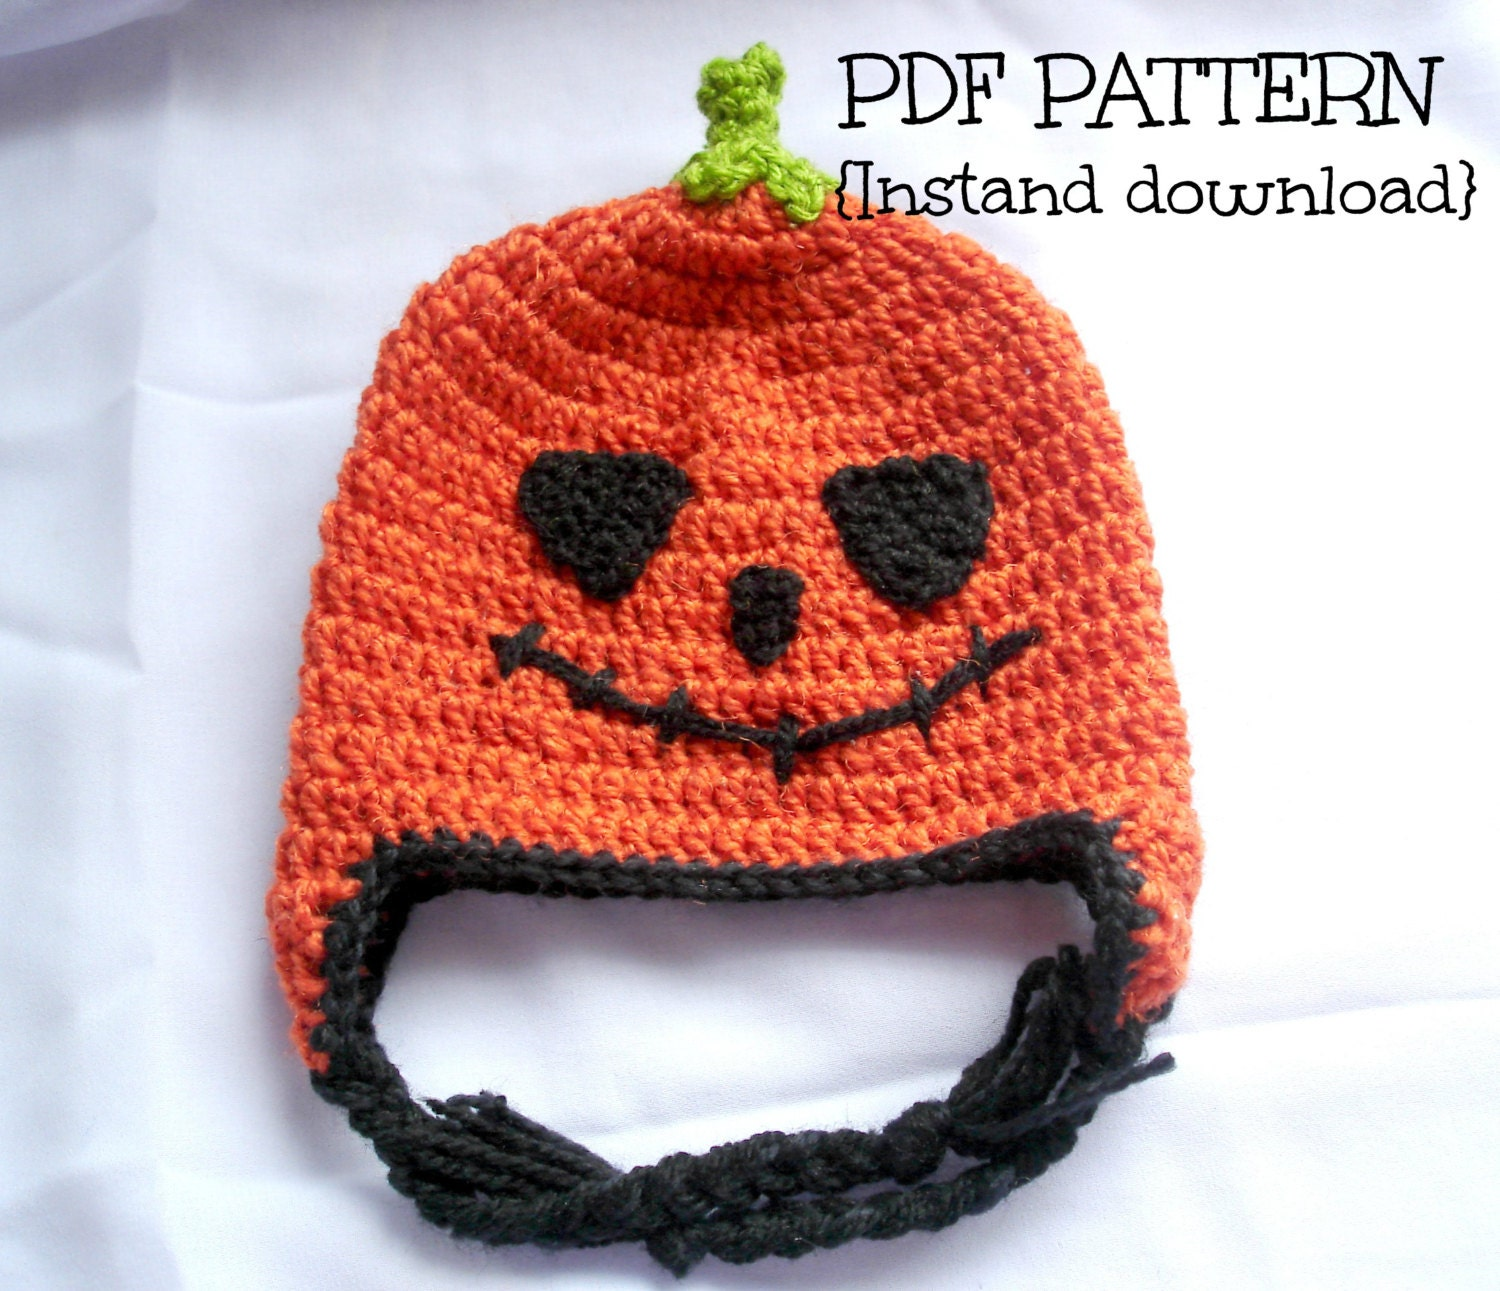 Free Crochet Hat Patterns For Halloween : Crochet hat pattern crochet Halloween hat pumpkin by ...